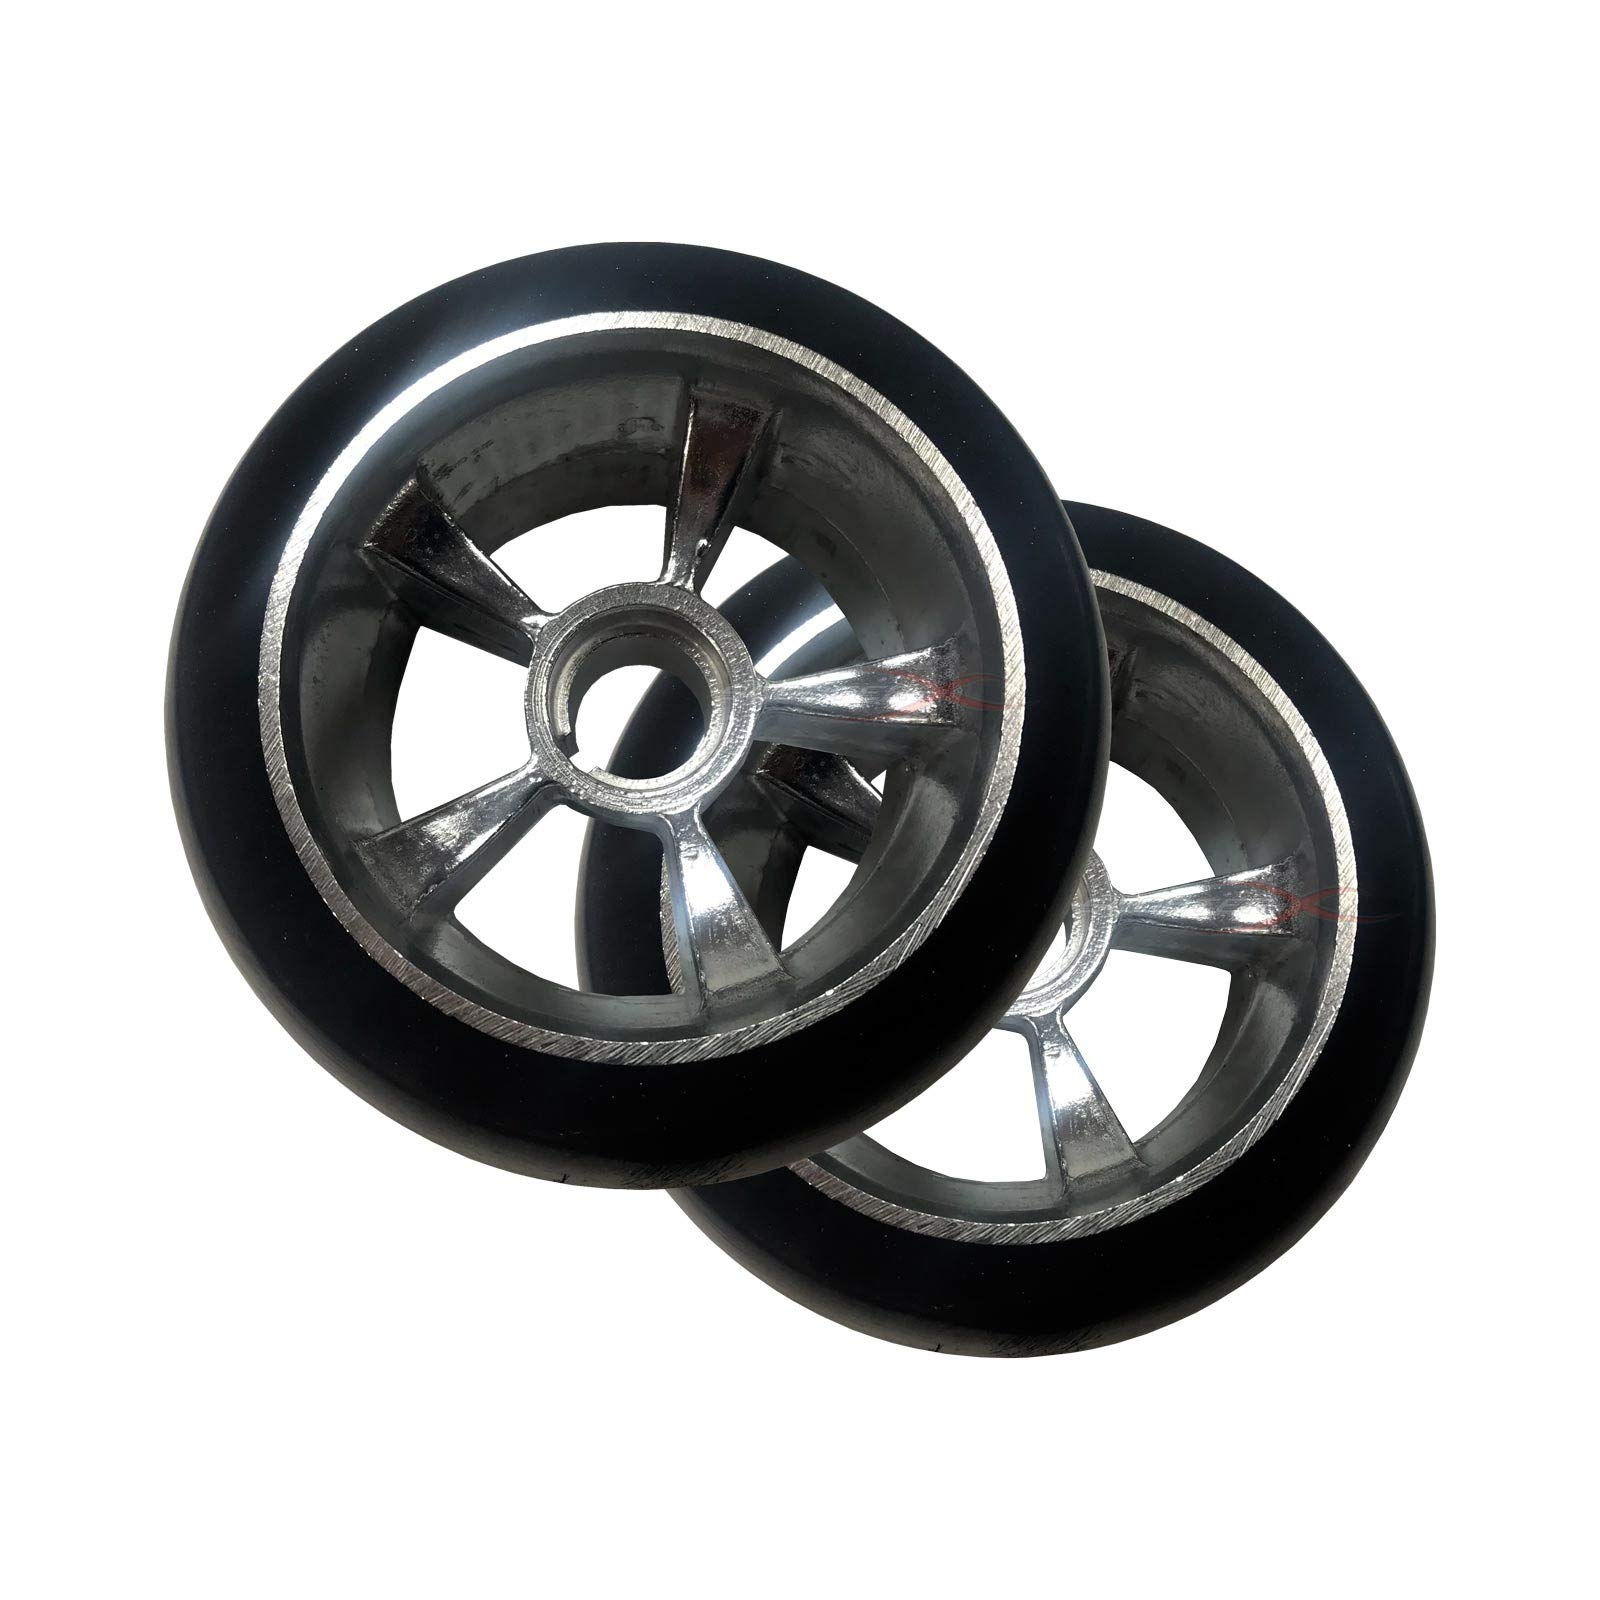 Scooter X Razor Ground Force Go Kart Replacement Rear Tire Wheels - Complete Pair/Set of 2-4.5'' Diameter / 2.5'' Wide - [3309]